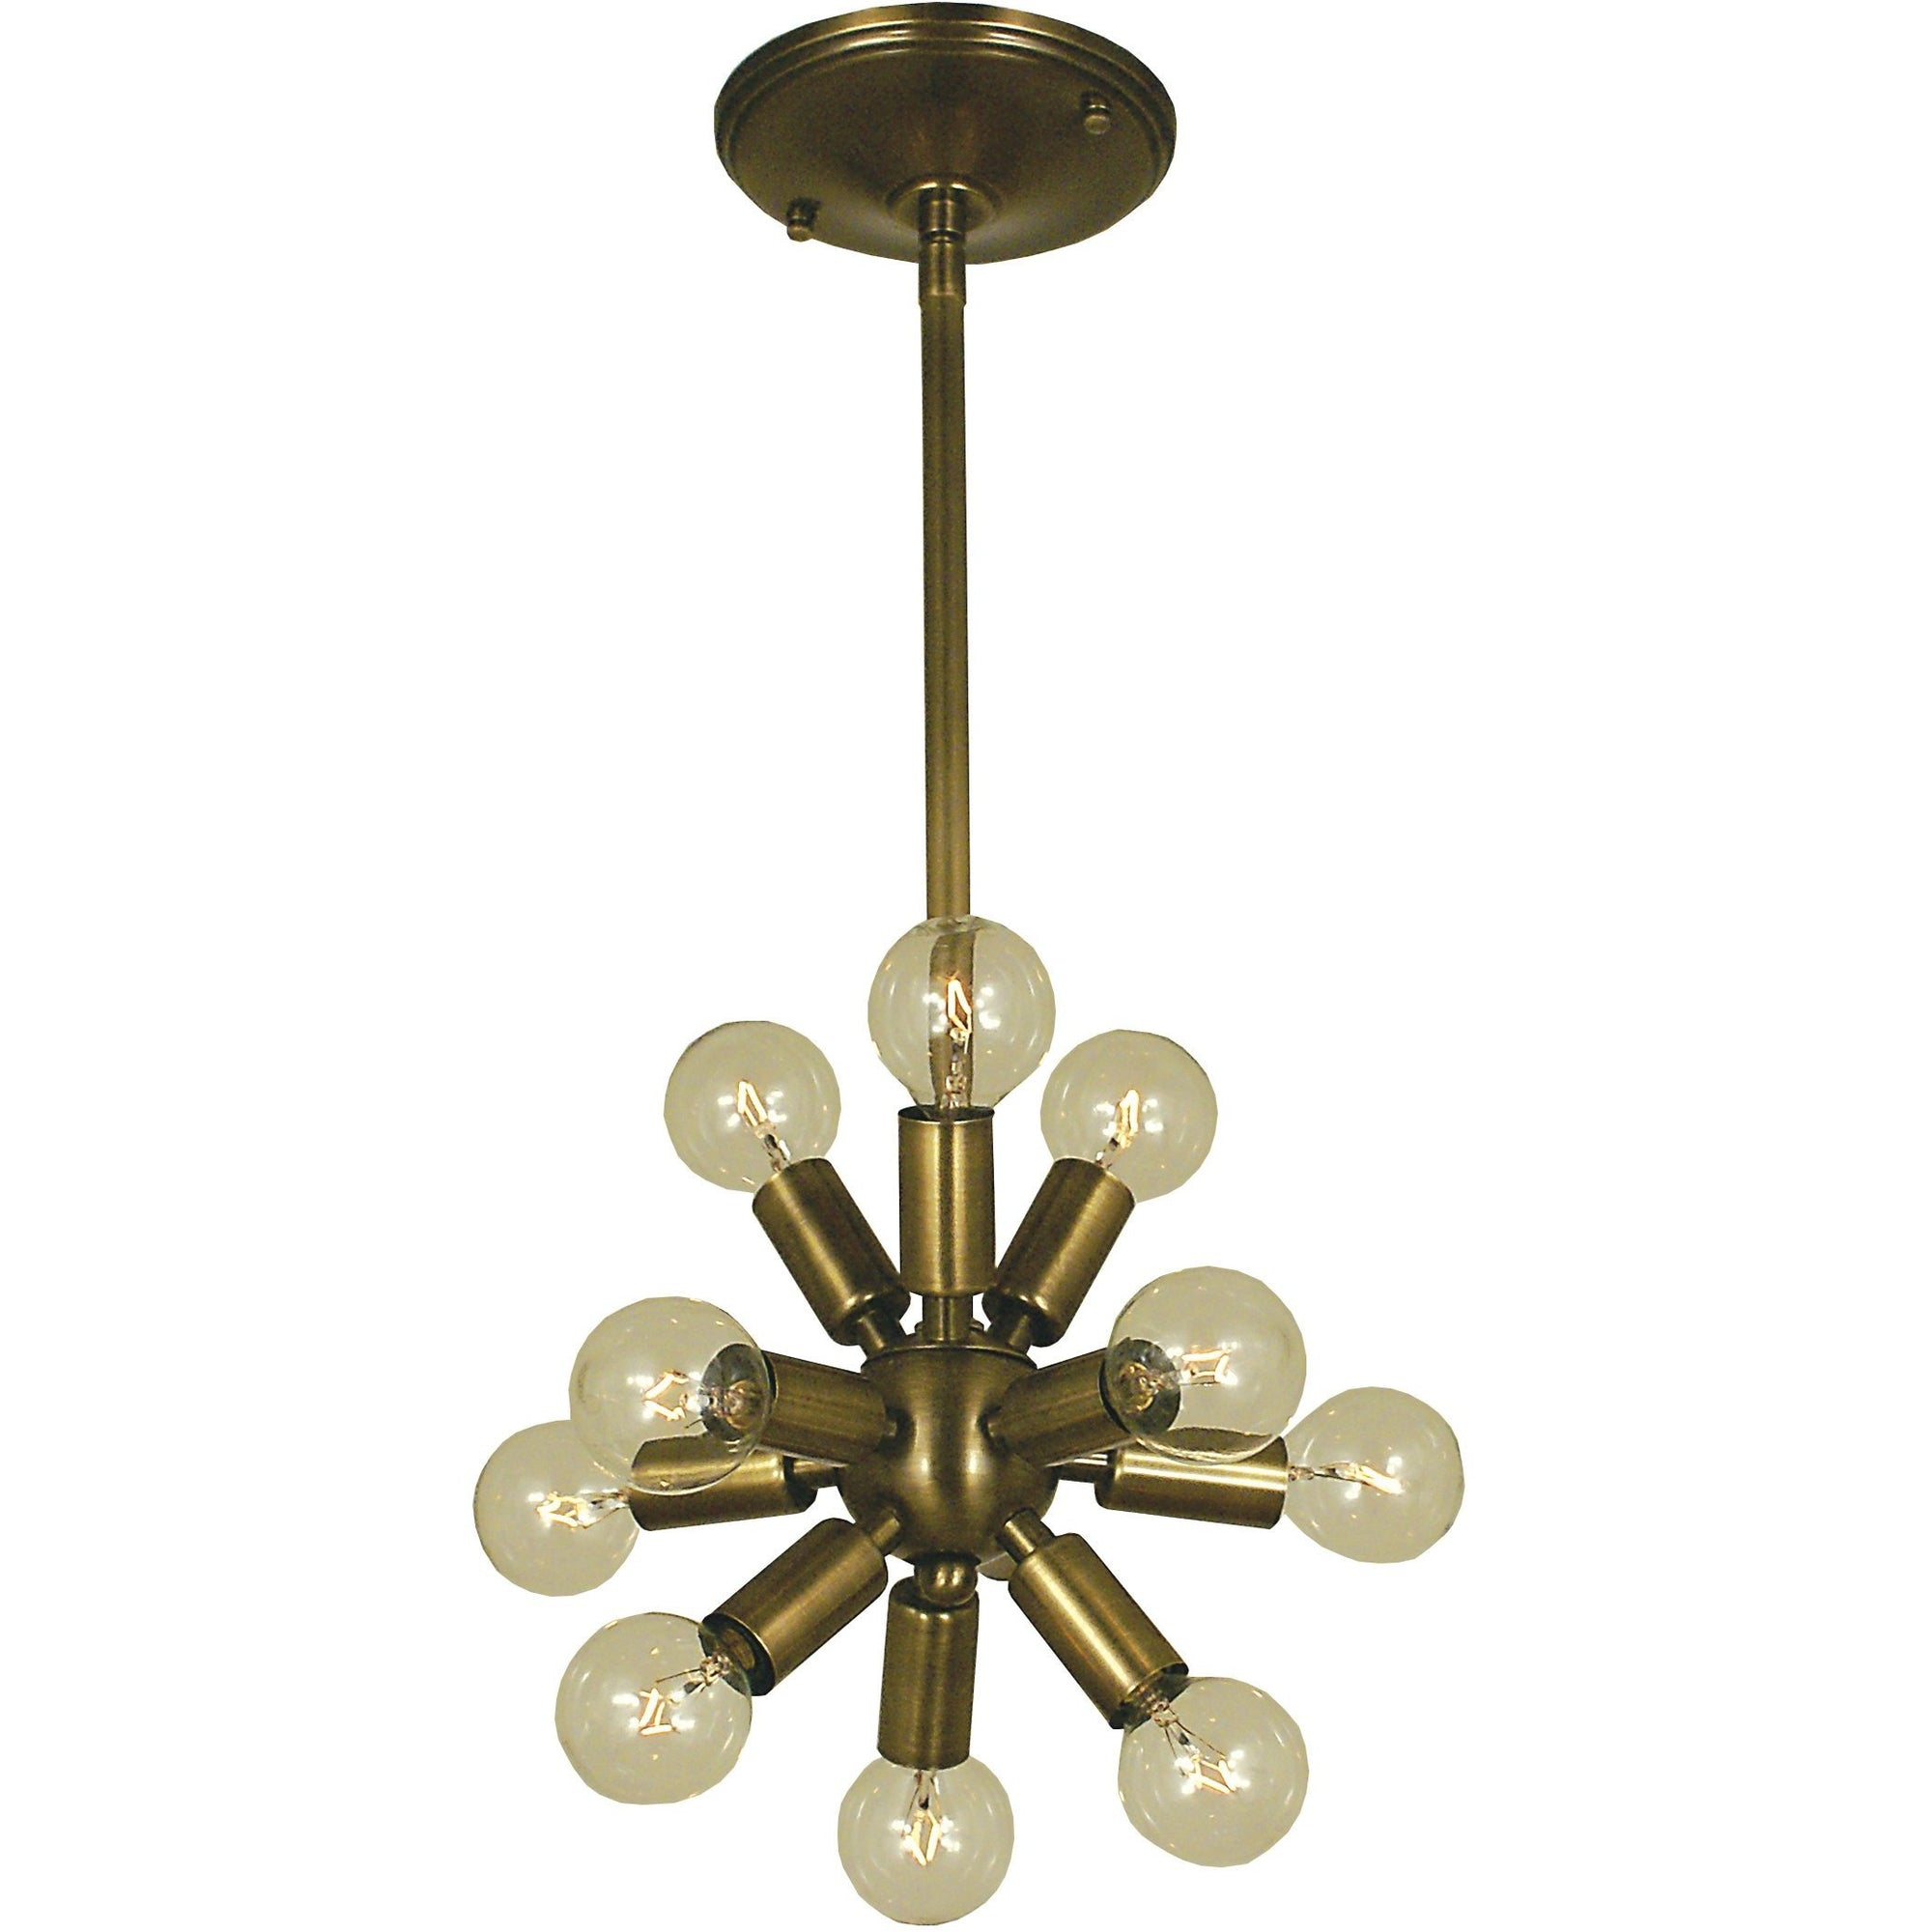 Framburg Mini Chandeliers Antique Brass 11-Light Antique Brass Simone Chandelier by Framburg 4391